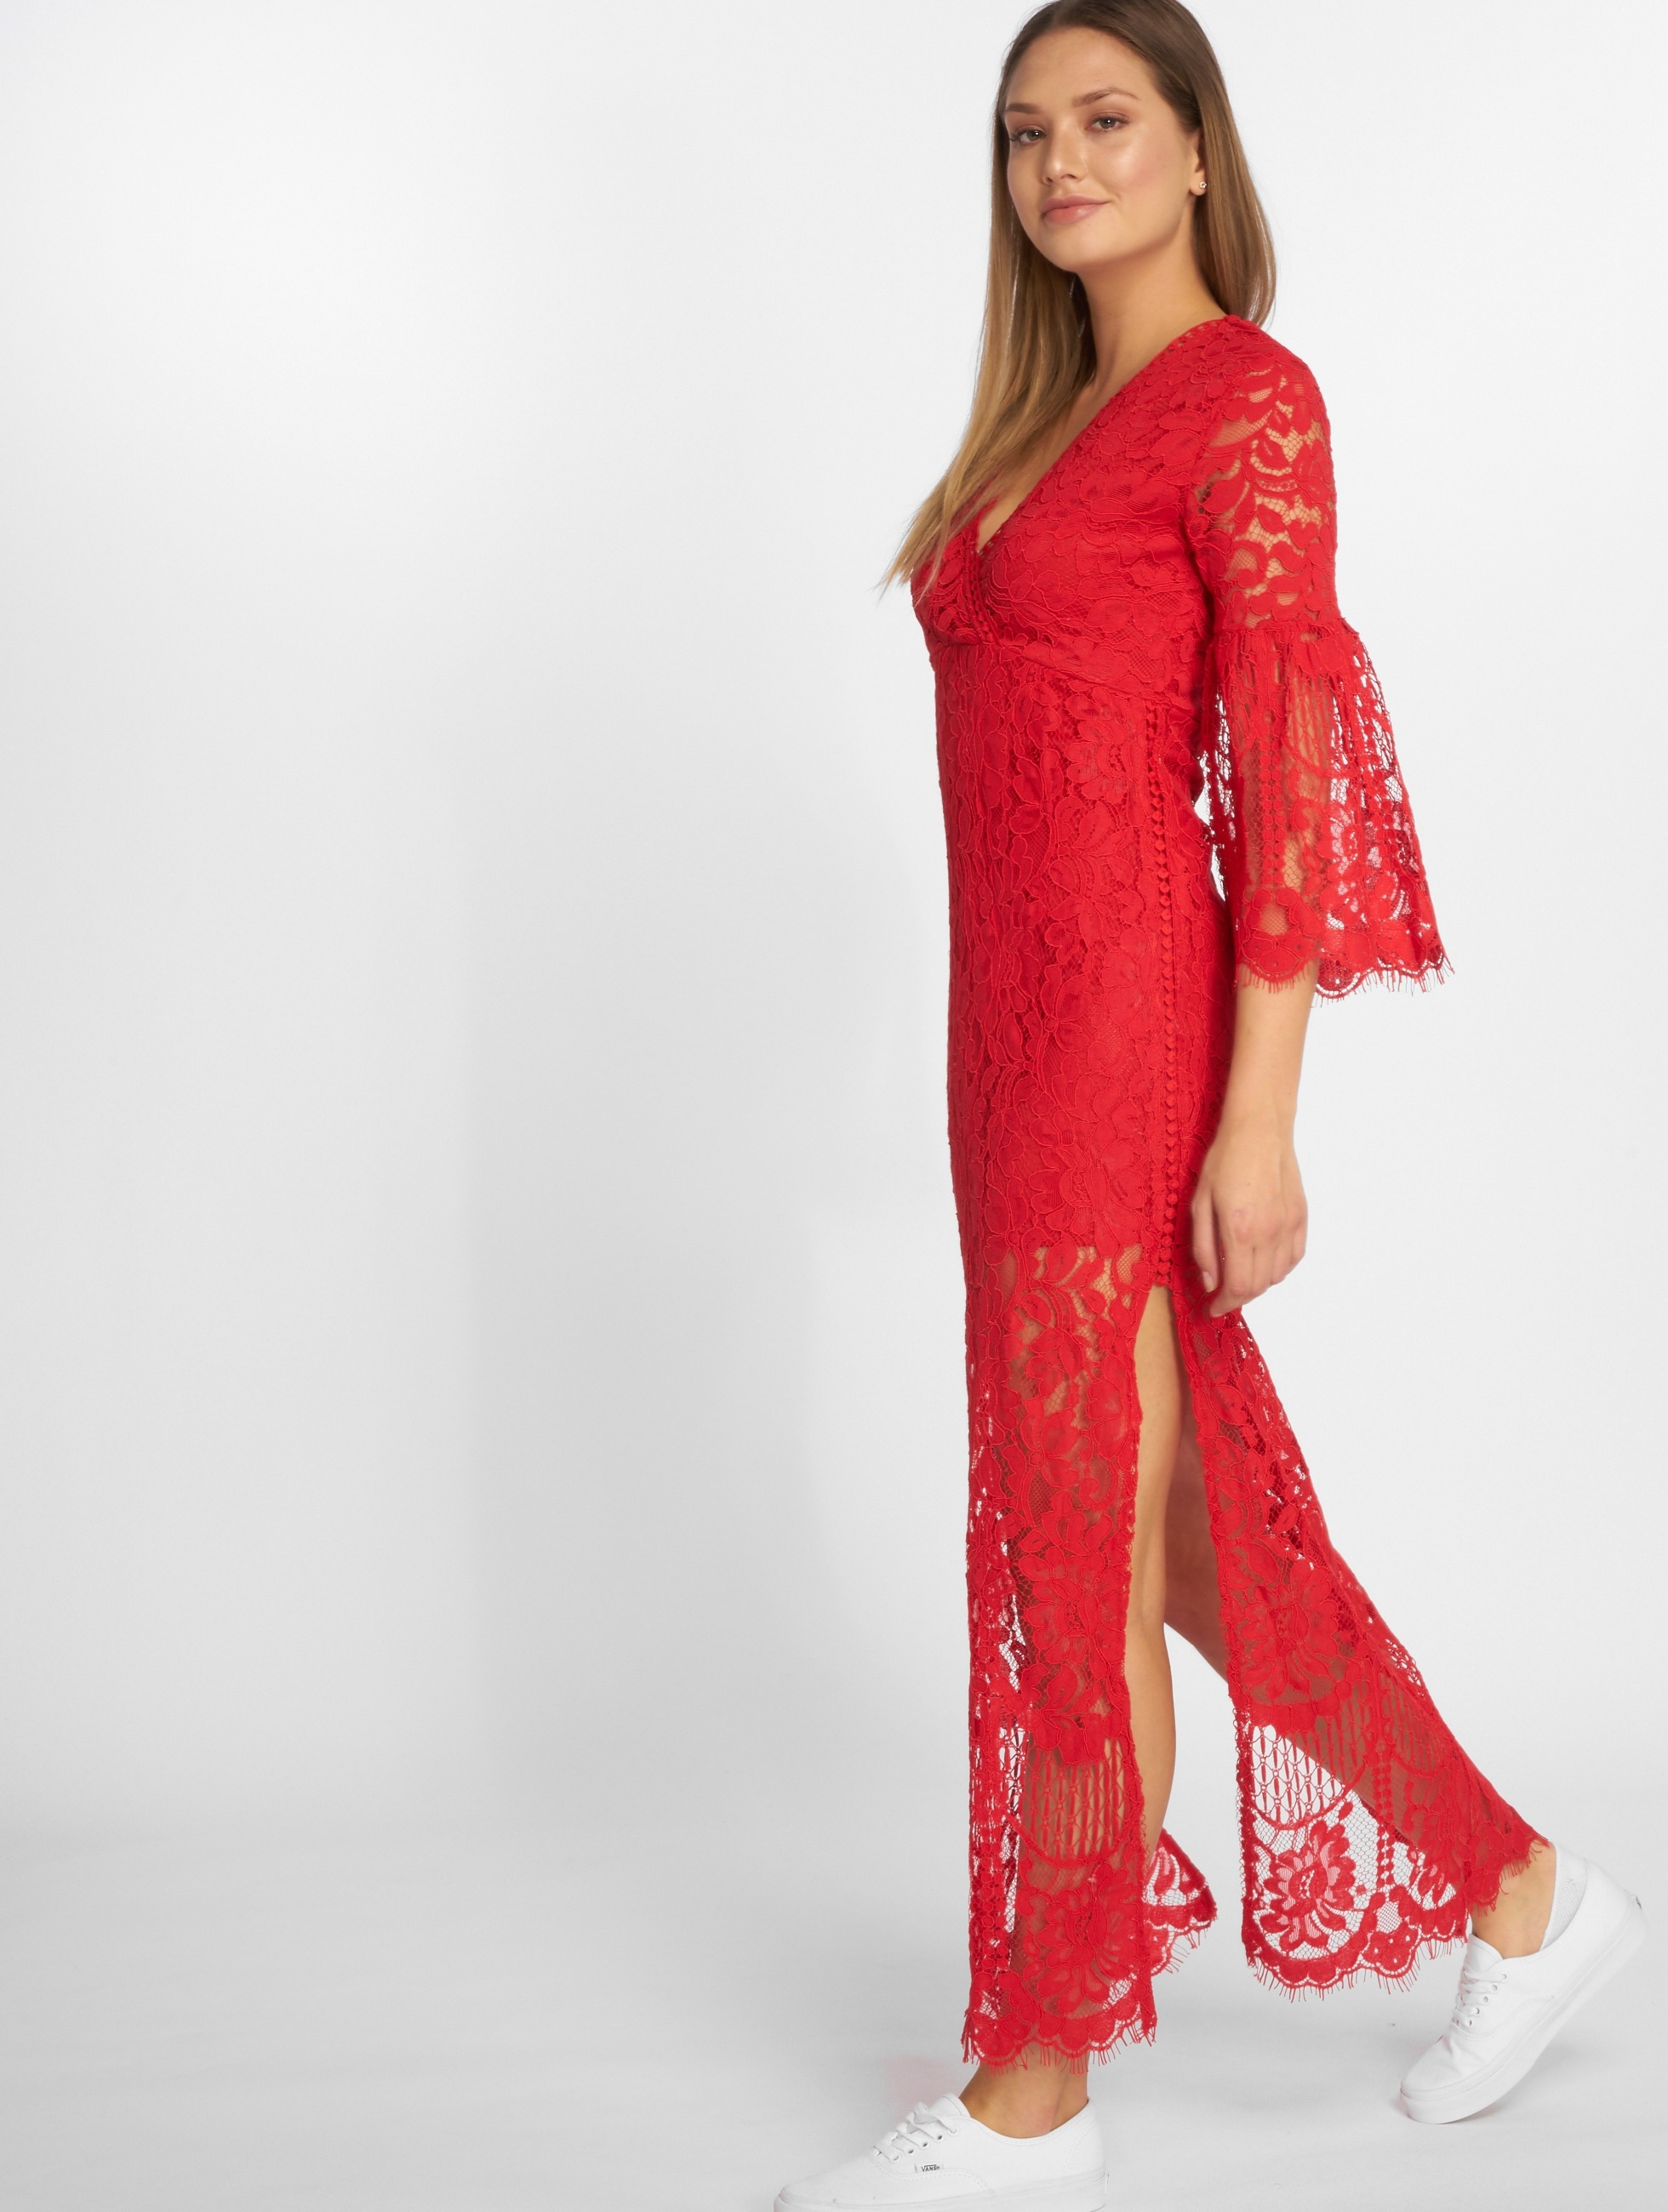 Bisous Project | Sally rouge Femme Robe